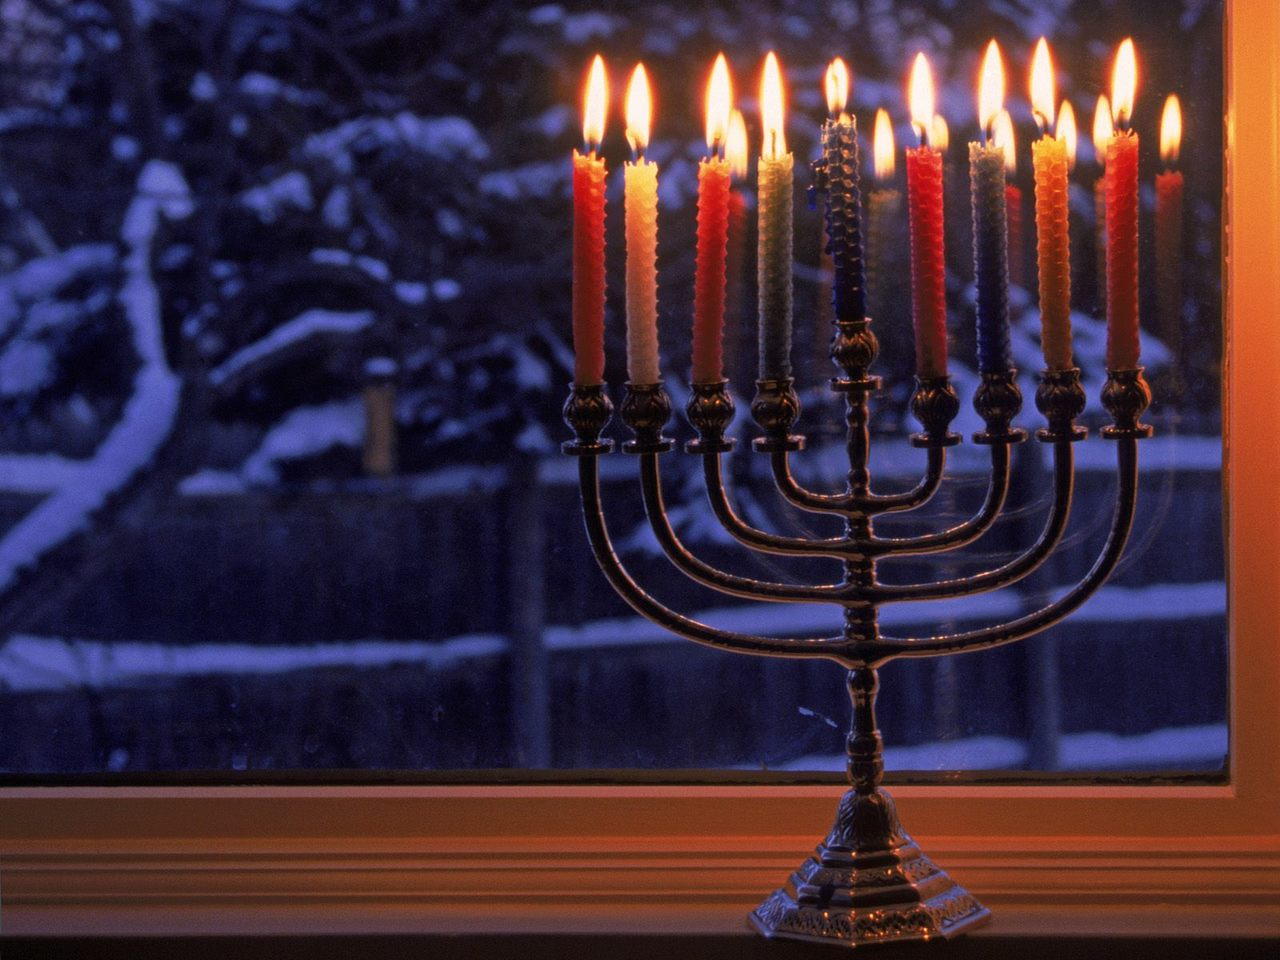 Hanukkah Harry Hangin' At The House On The Hill | The Return of the ...